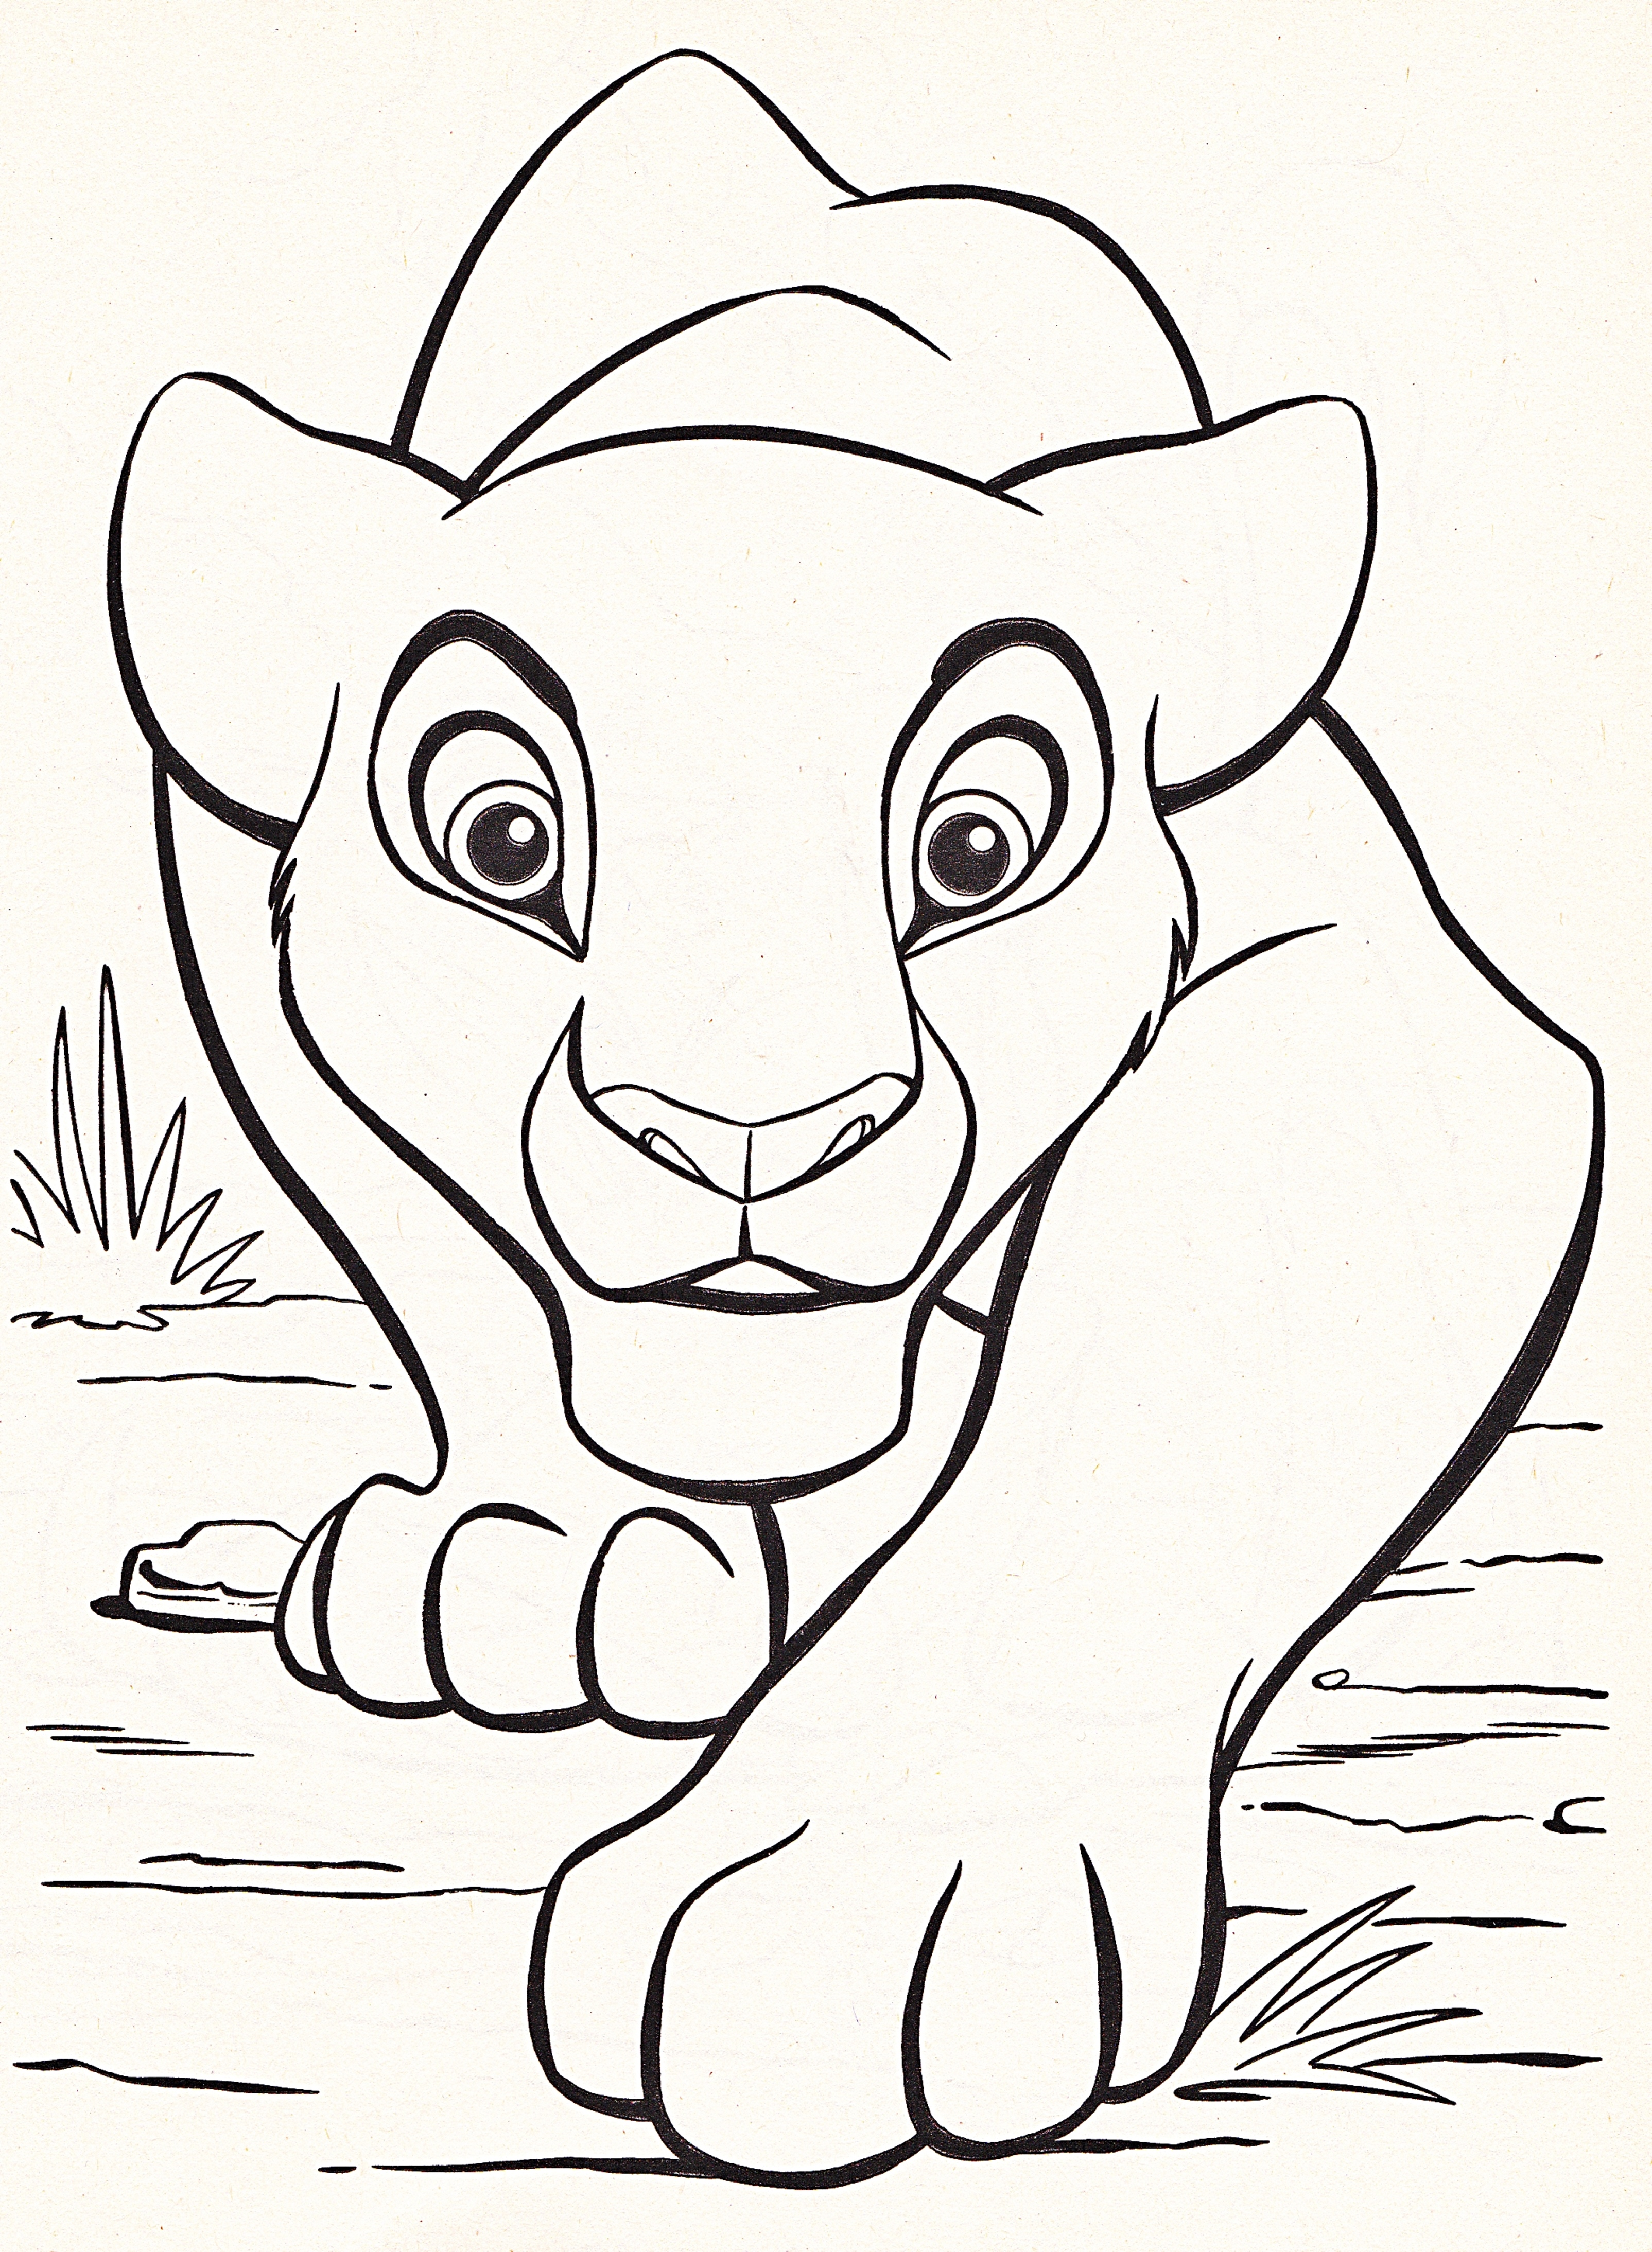 [LARGE] Disney Coloring Pages